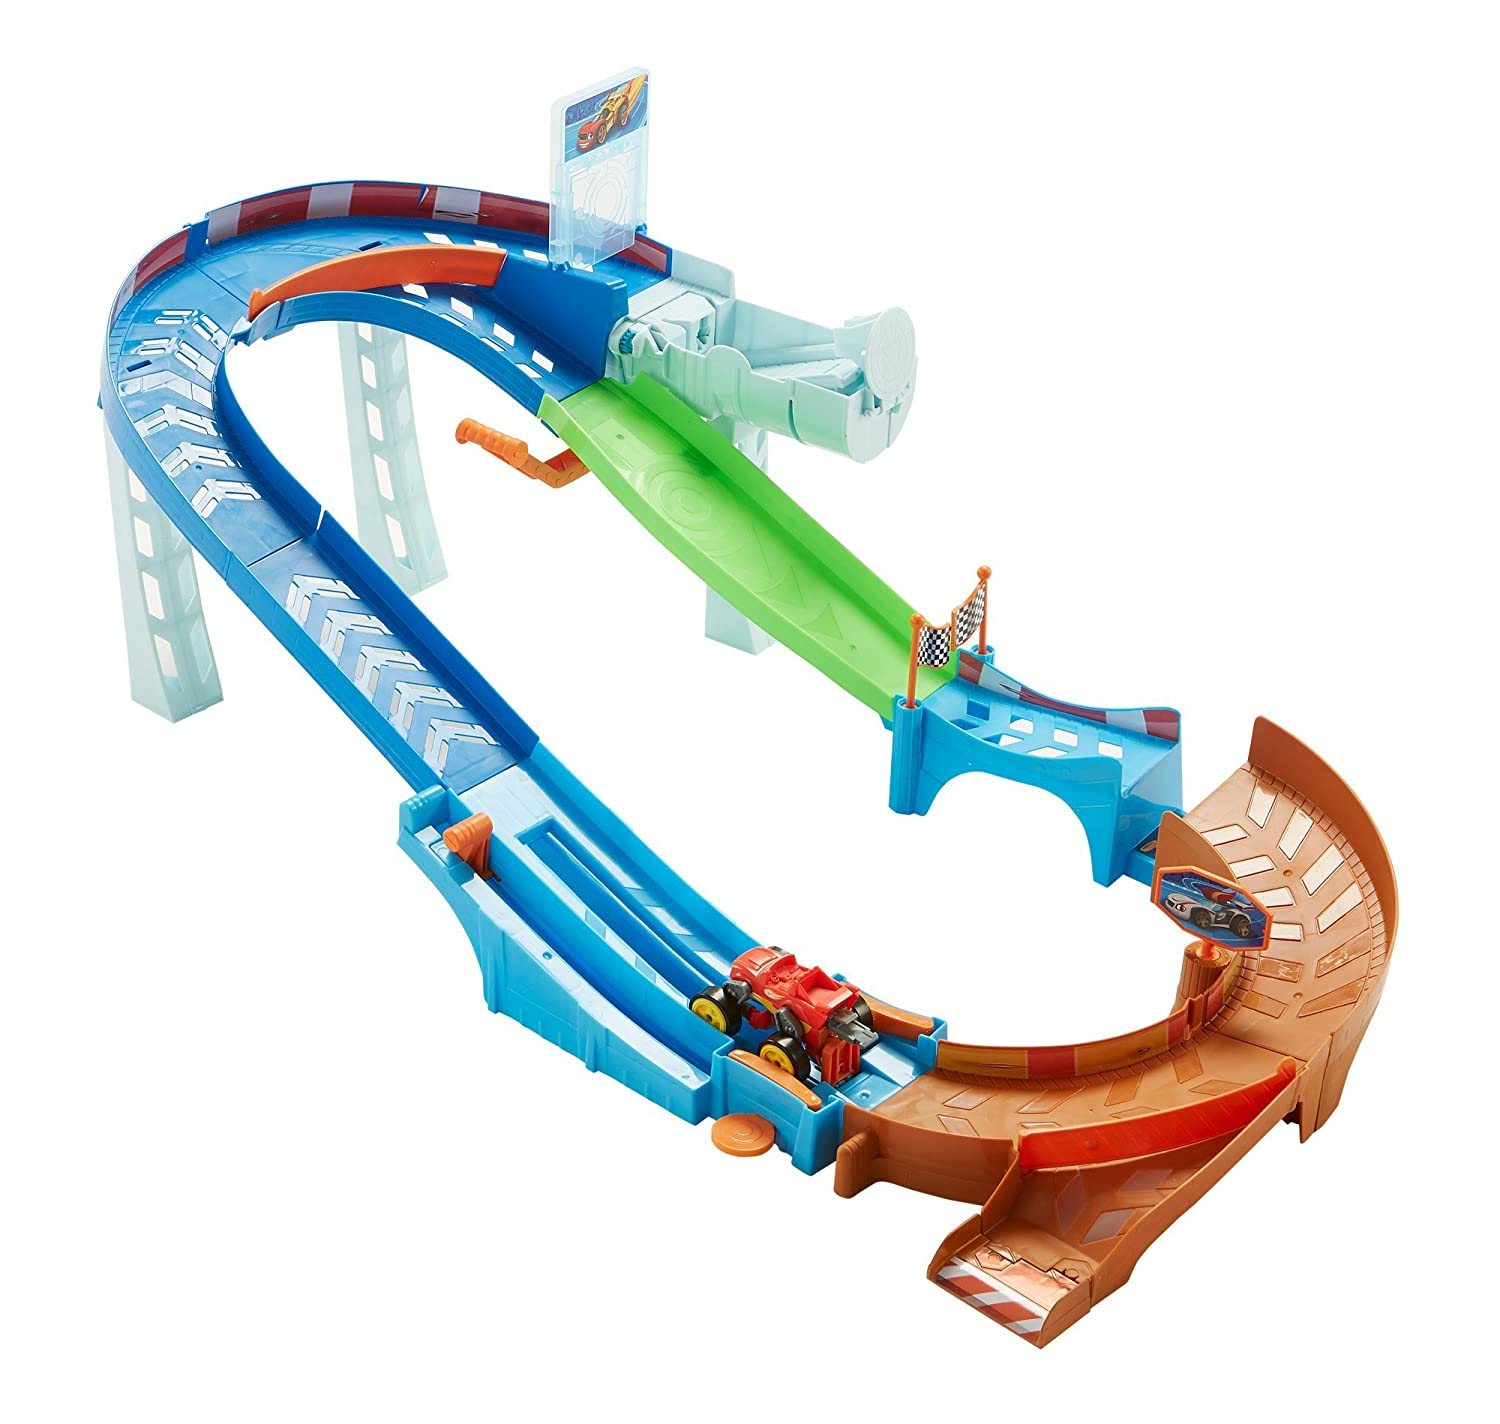 Nickelodeon Blaze and the Monster Machines Flip & Race Speedway